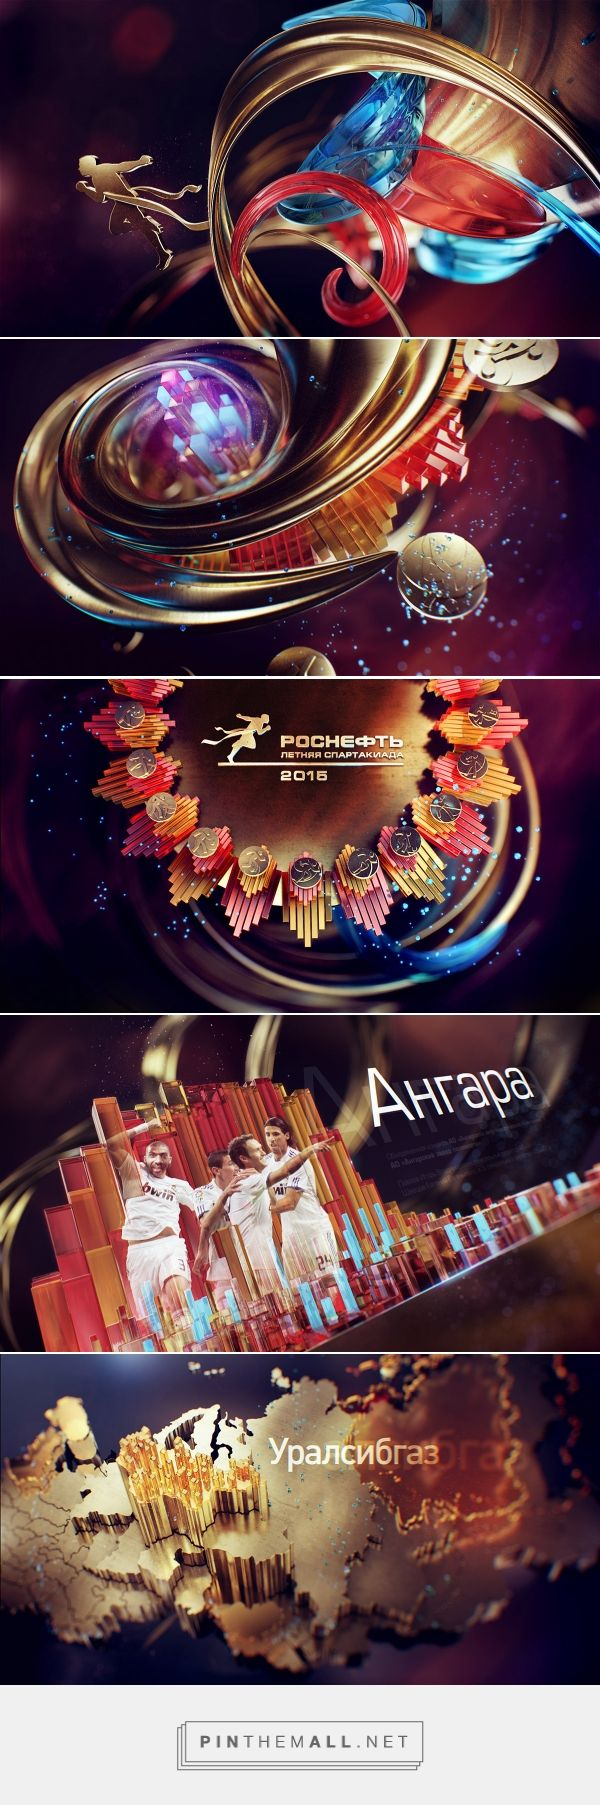 Rosneft Styleframes on Behance... - a grouped images picture - Pin Them All